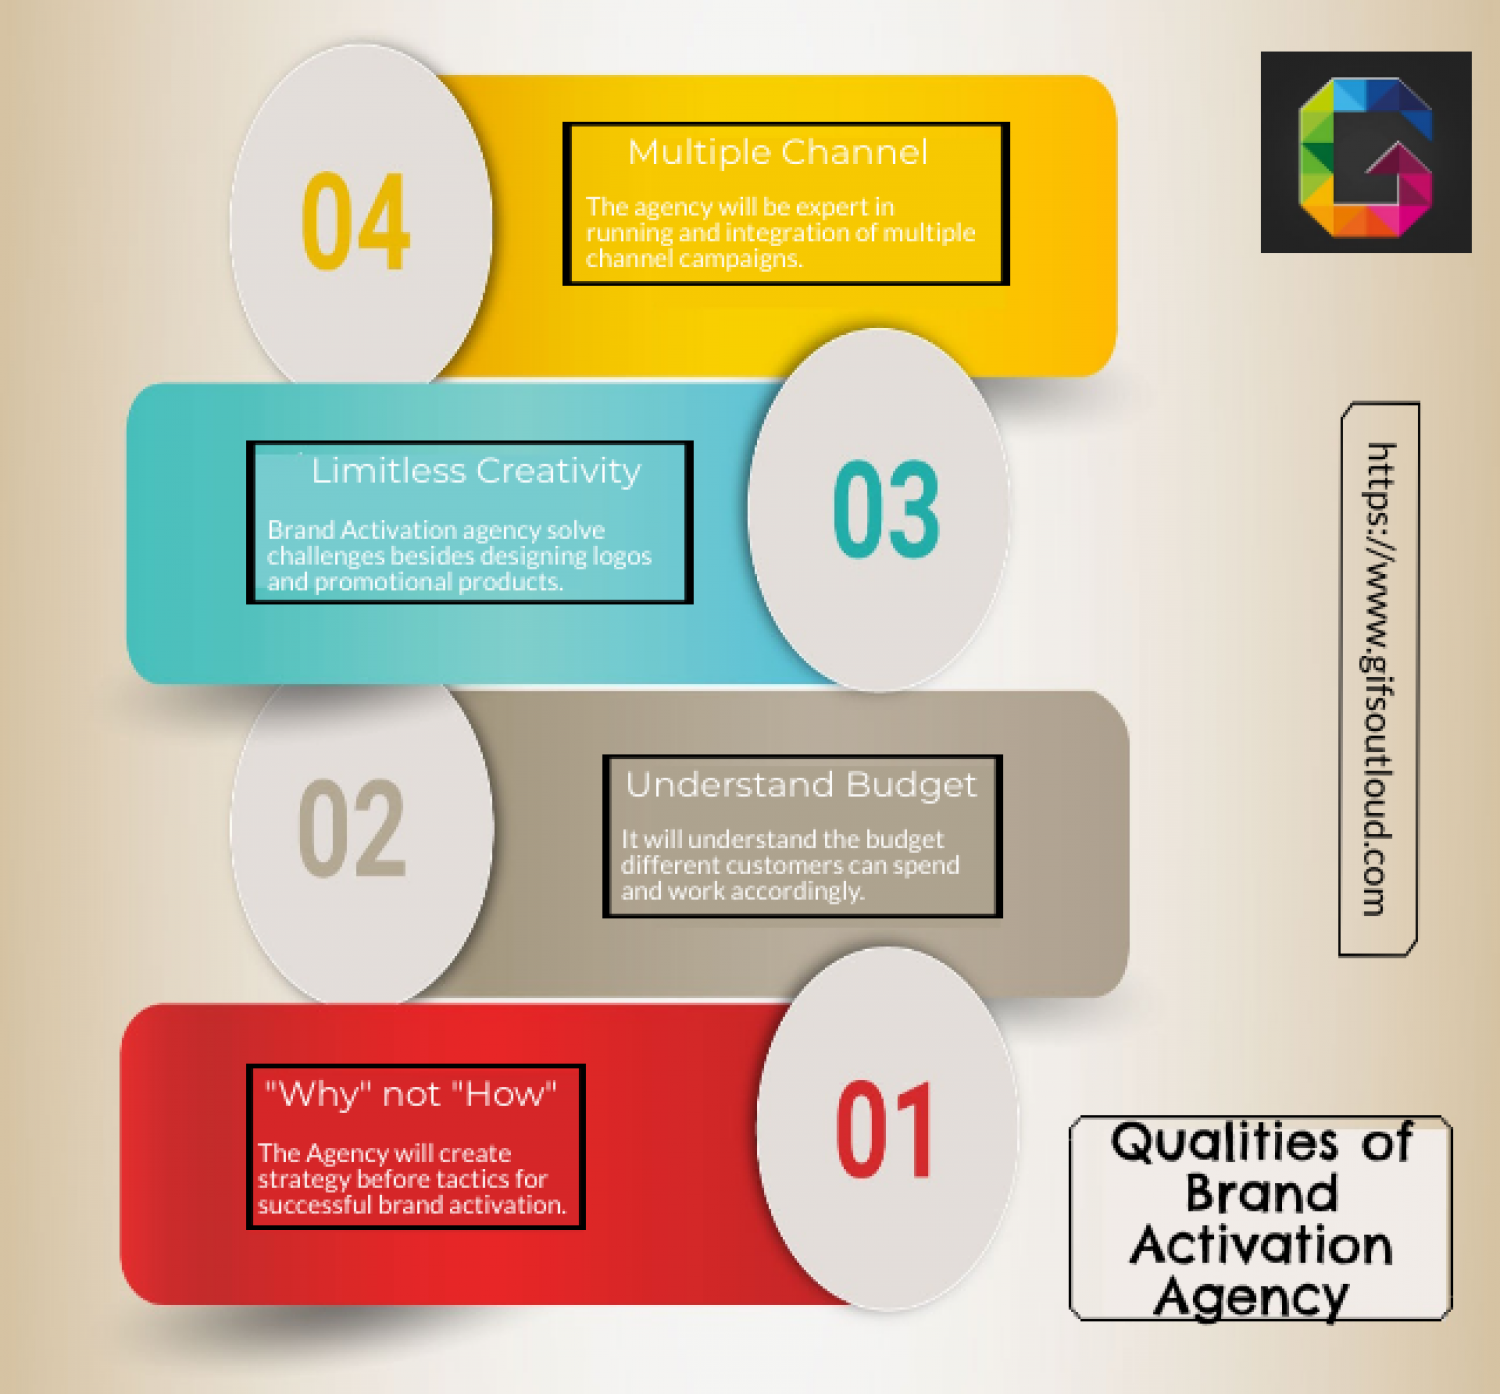 Qualities of Brand Activation Agency Infographic